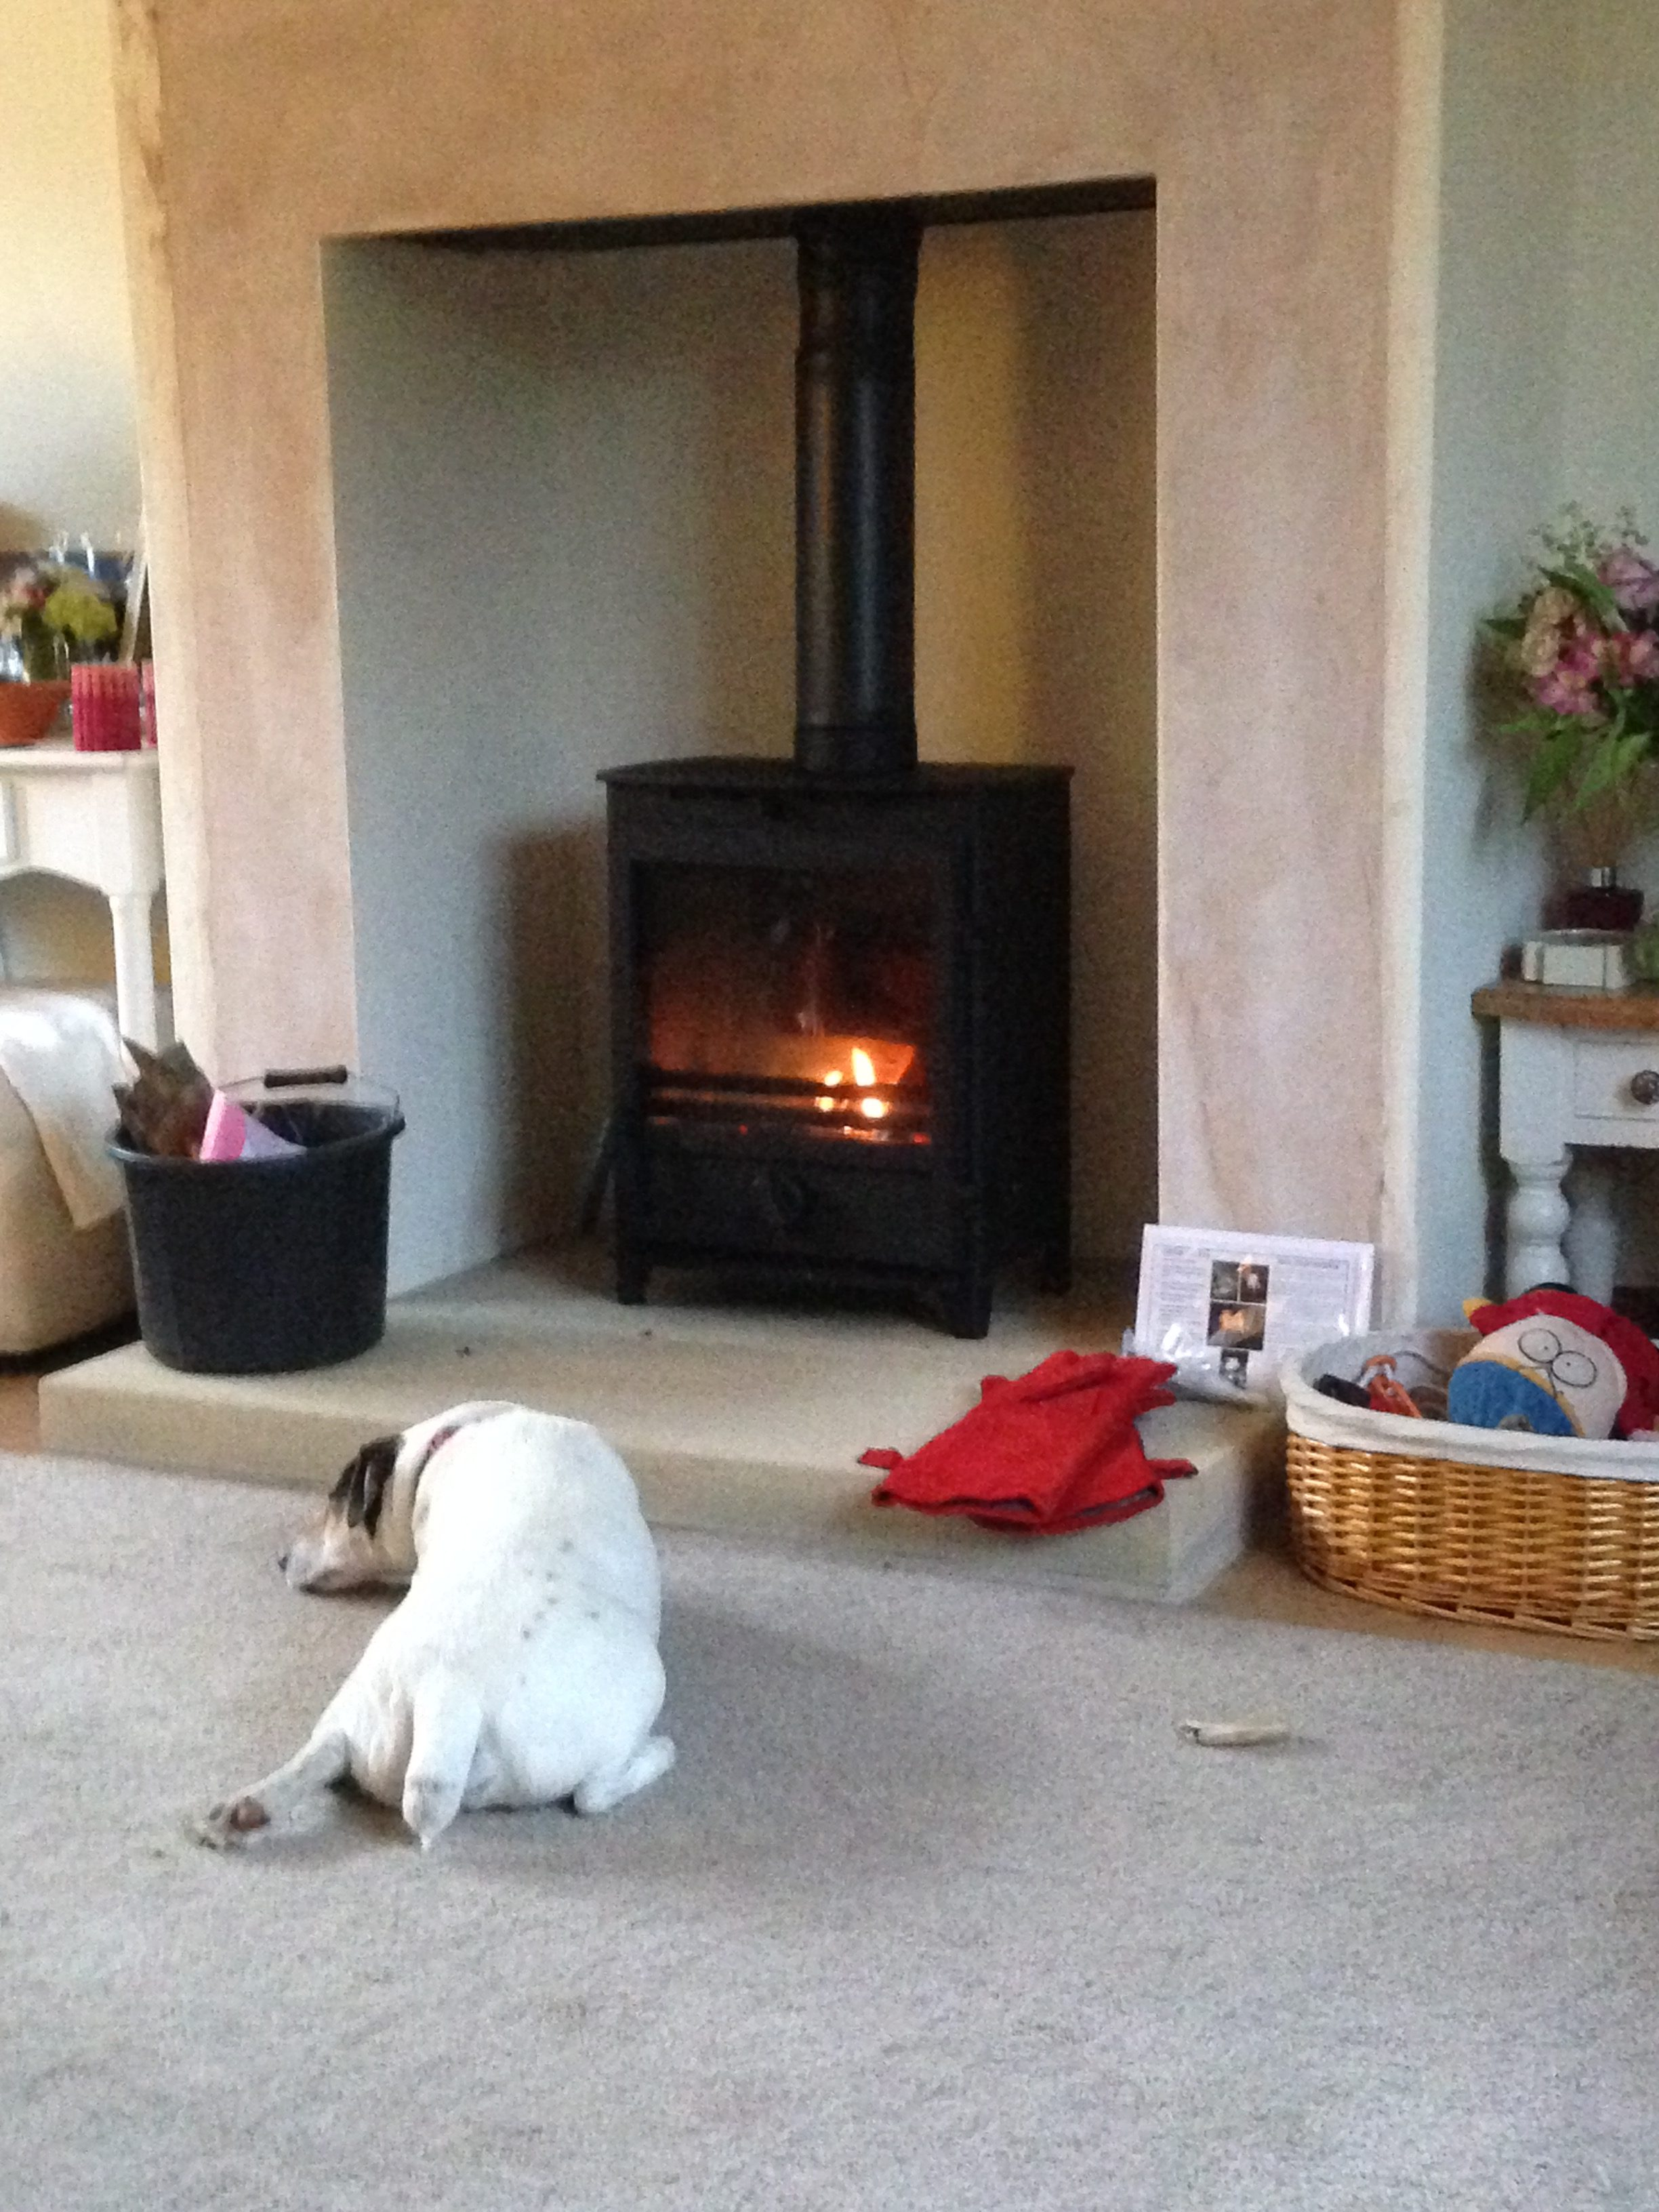 A fireline FX5W Mans best friend was very happy when this was fitted